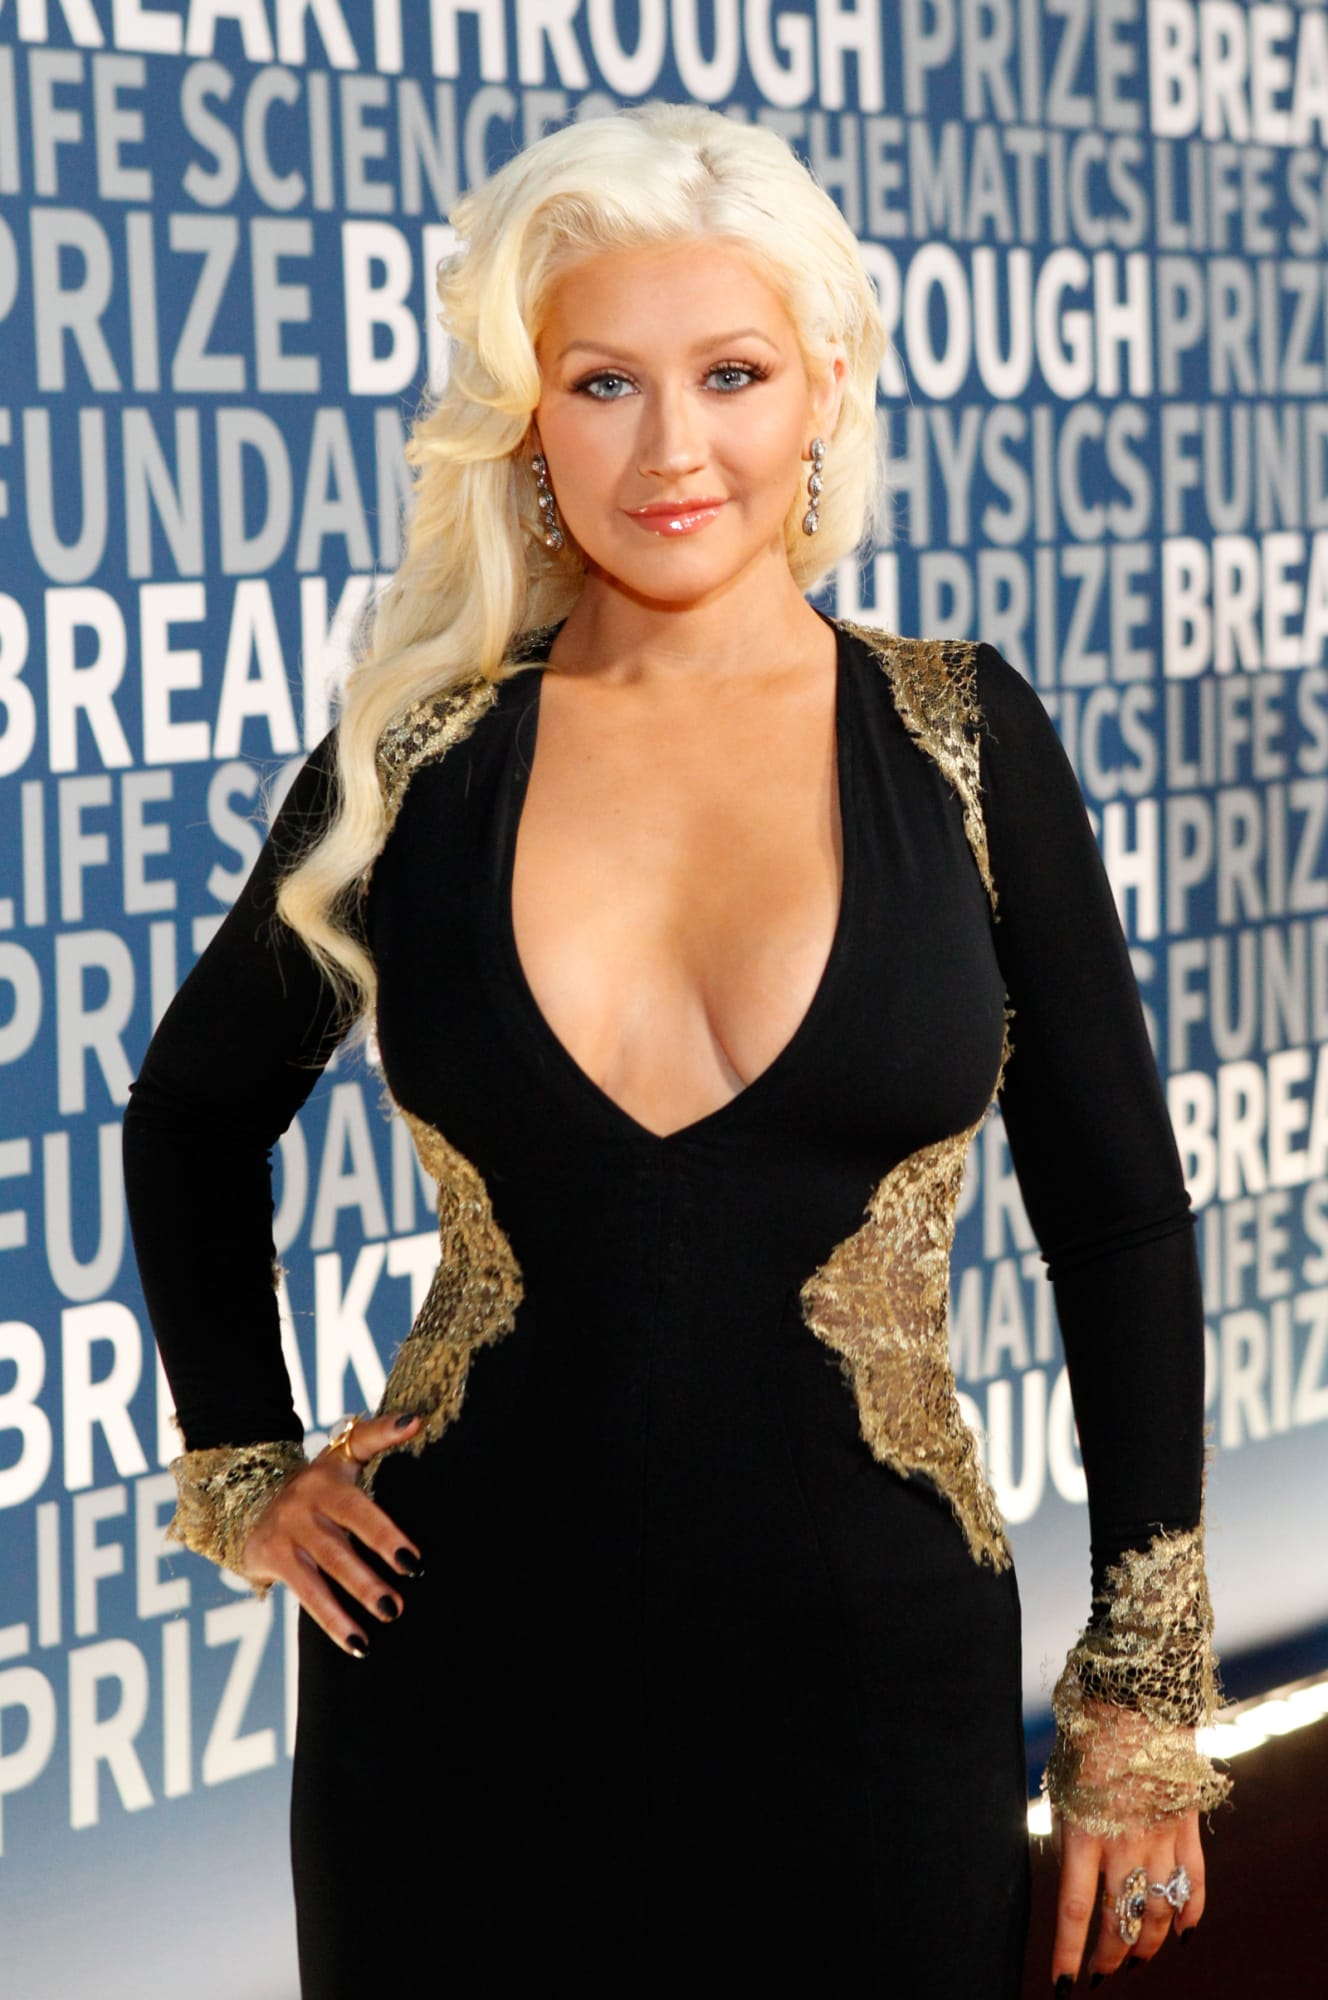 Christina Aguilera sparks complaints in revealing shirt-lift